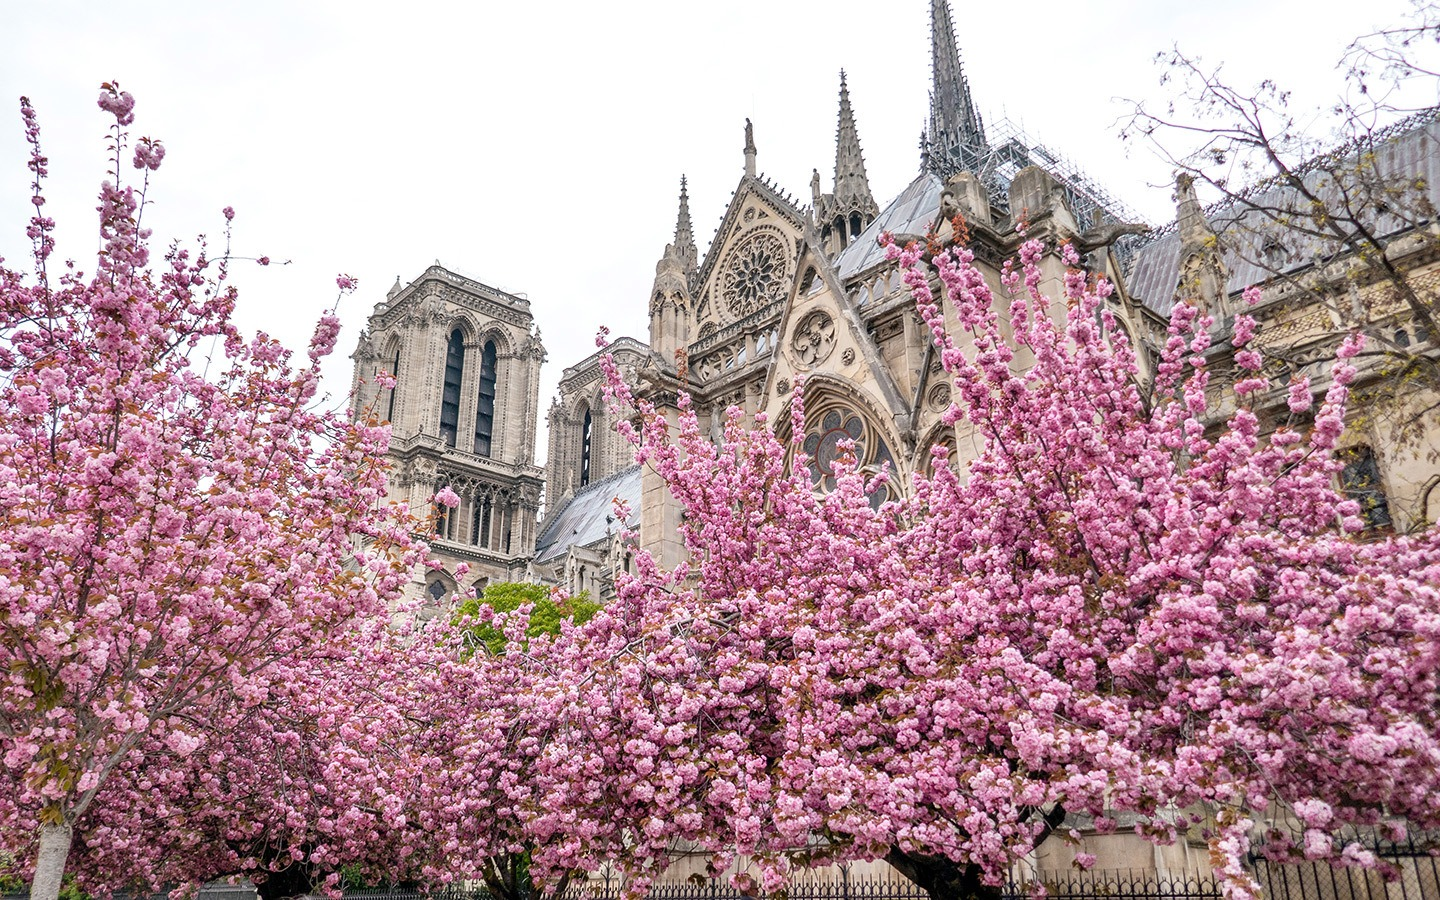 Cherry blossoms at Notre Dame cathedral Paris